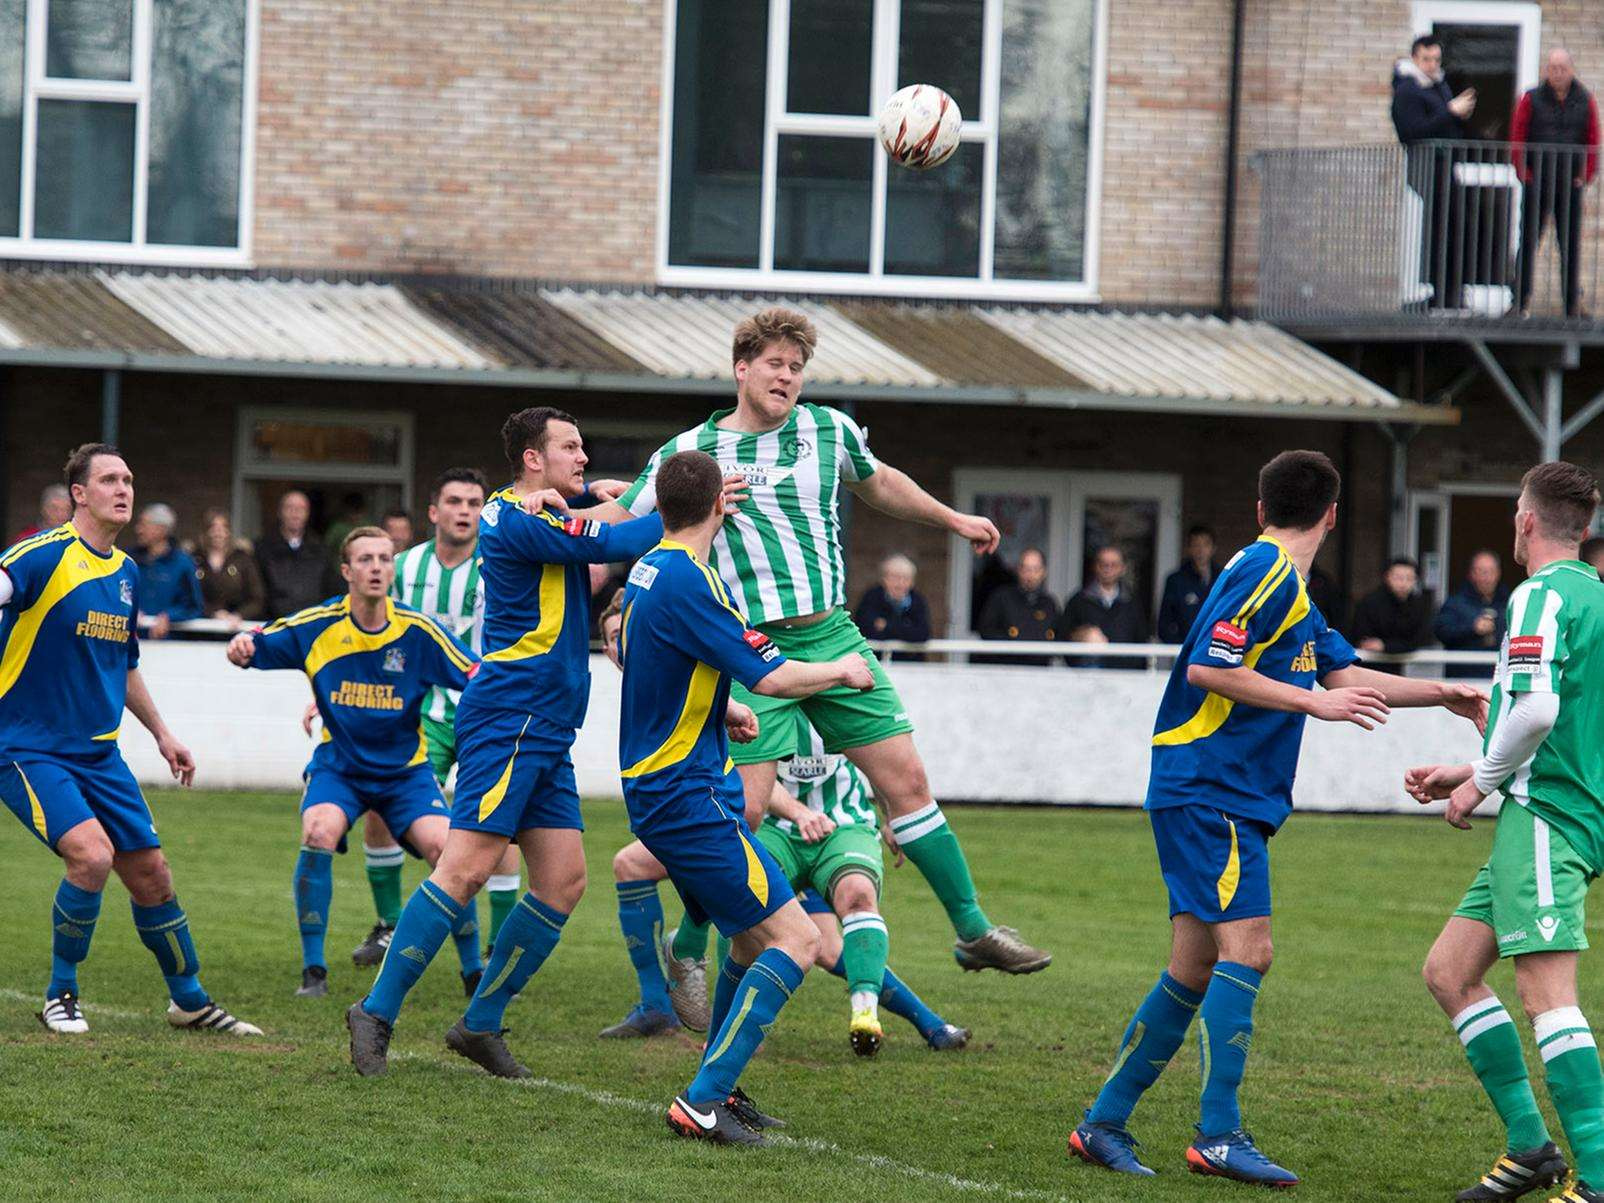 HEADS UP: Soham's Lloyd Groves attempts to force the ball goalwards during the crucial win over Thurrock